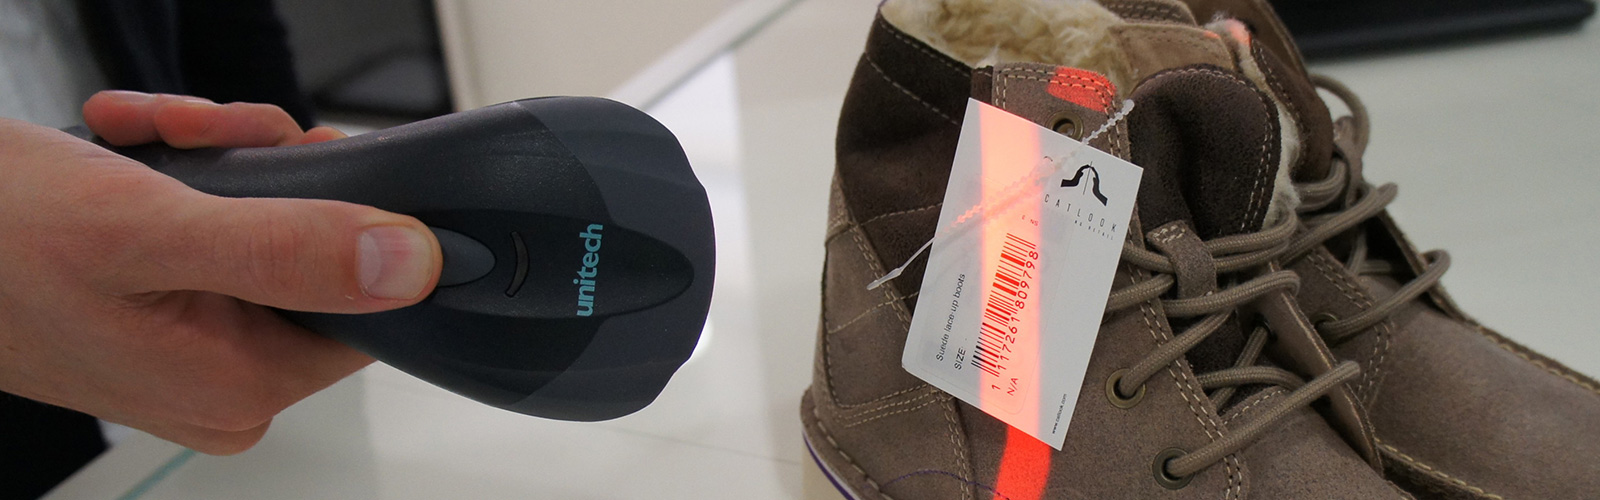 Someone scanning a barcode on the label of some brown boots with a barcode scanner